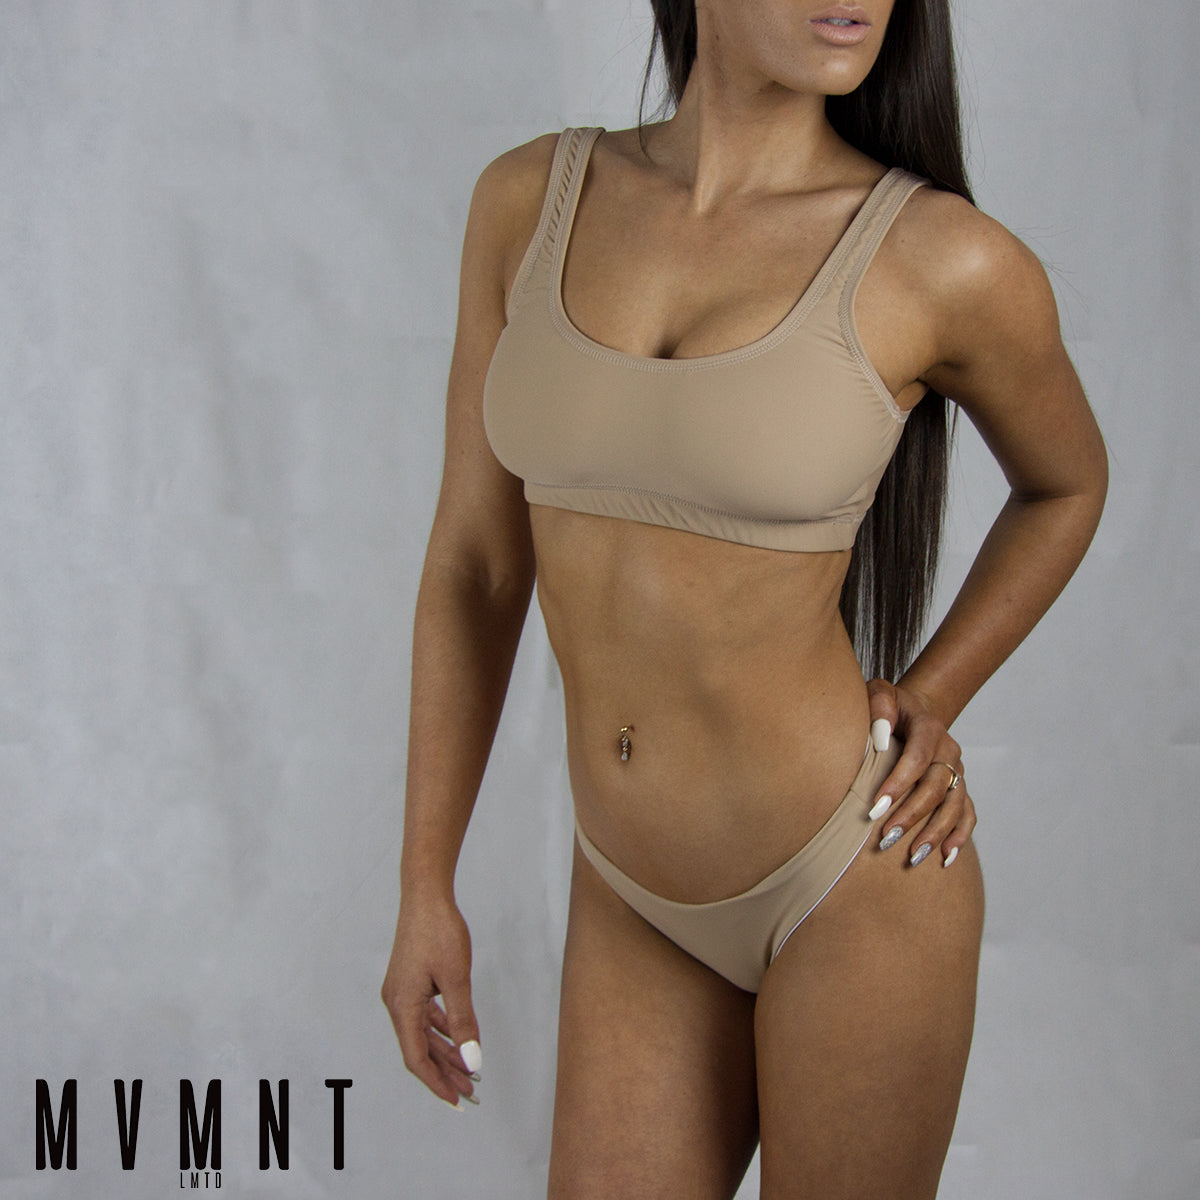 Muscle Swim by ABS2B Fitness | MVMNT LMTD | Paula Bikini Top